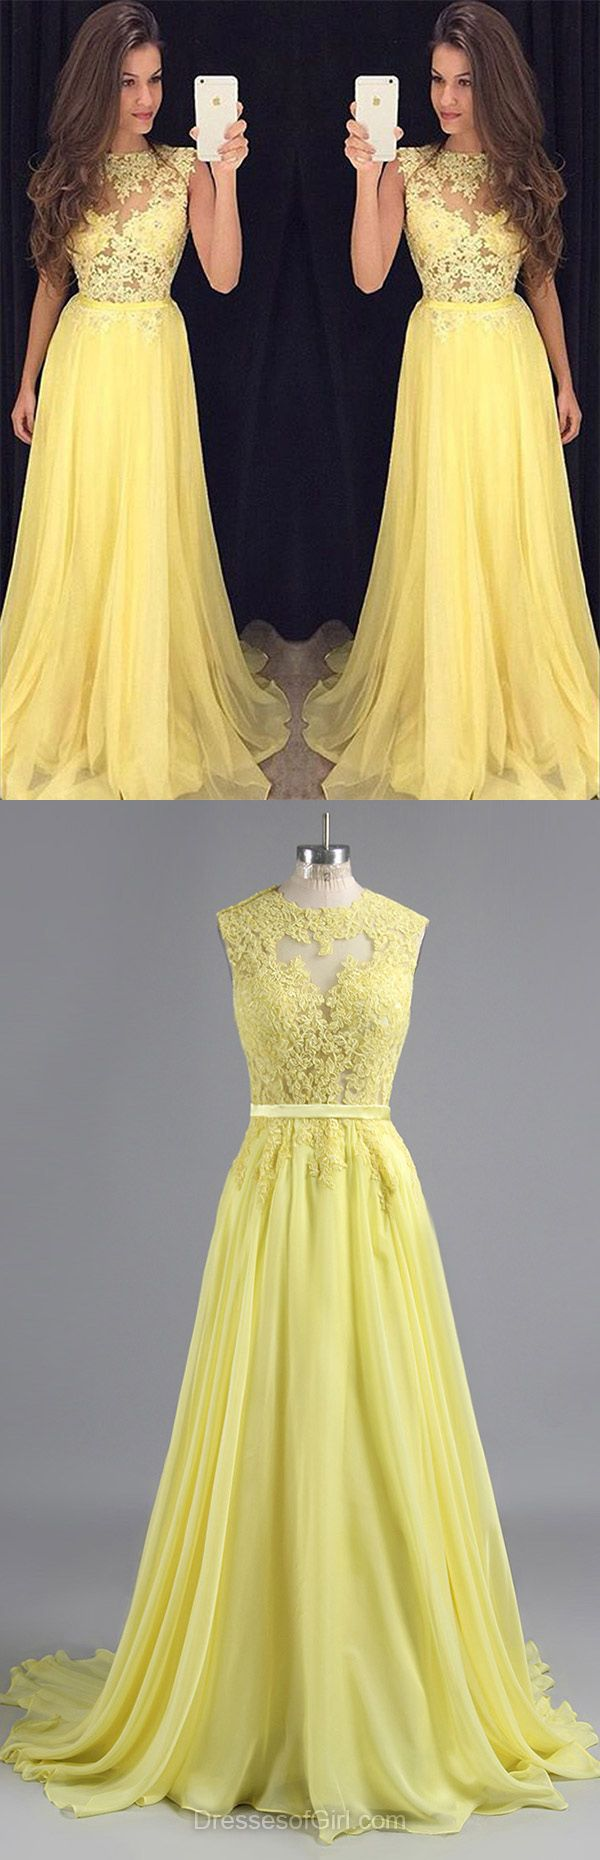 Yellow Formal Dresses, Graceful Scoop Neck Chiffon Party Gowns, Appliques Lace Daffodil Long Prom Dresses